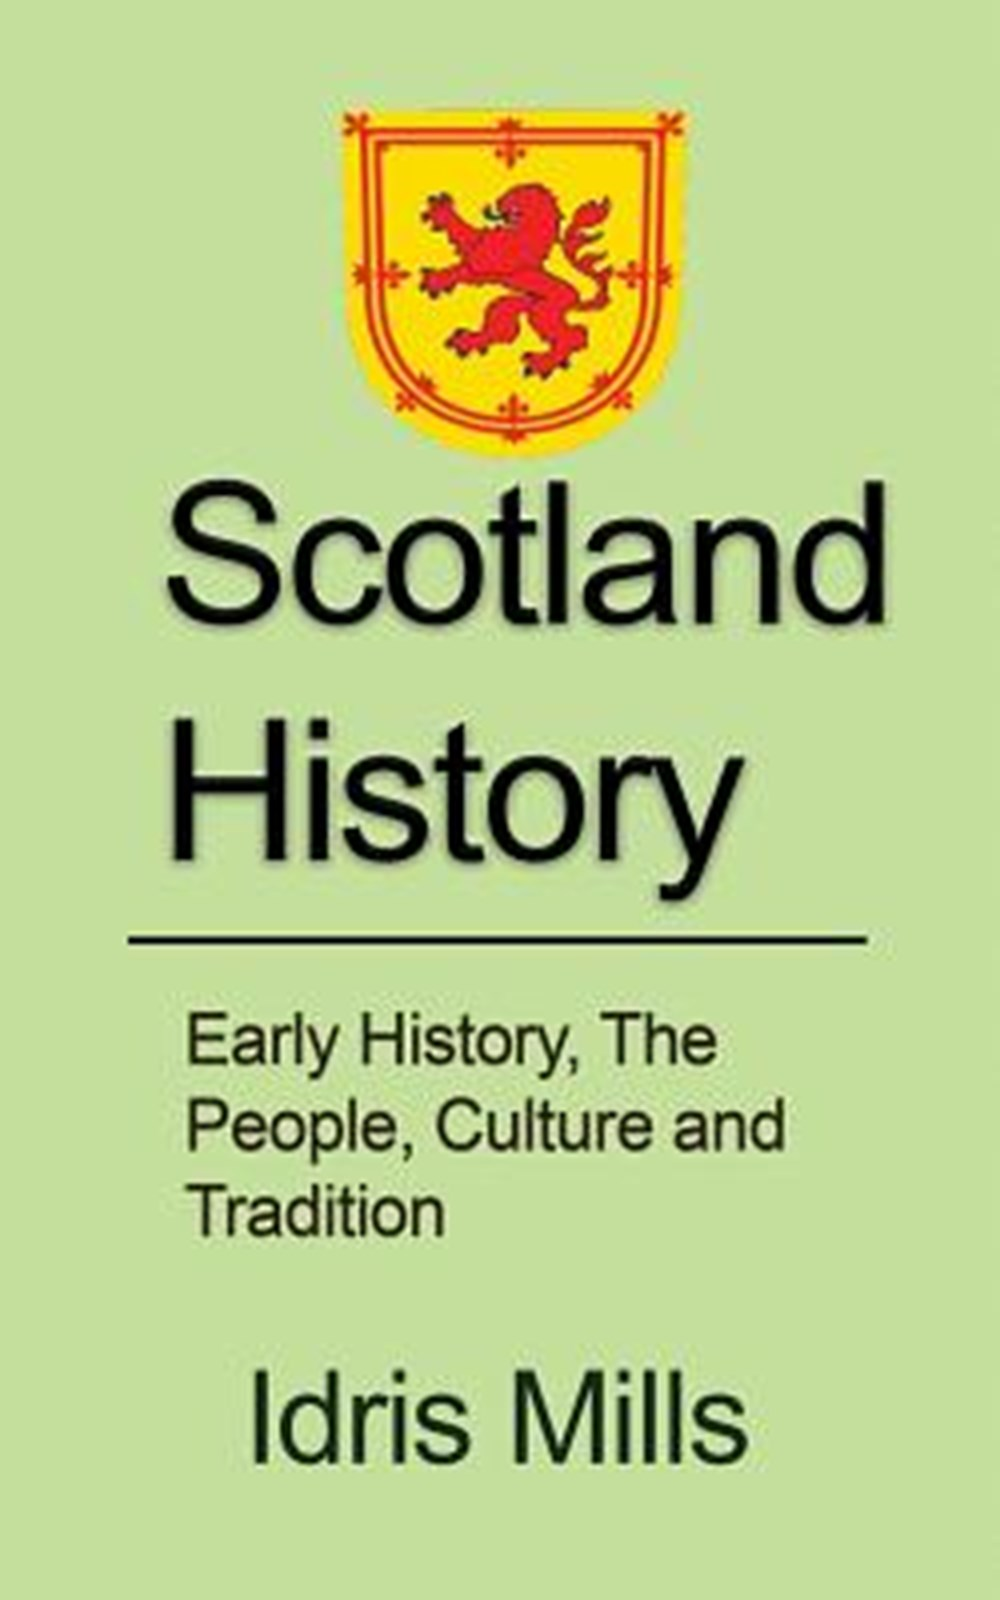 Scotland History Early History, The People, Culture and Tradition